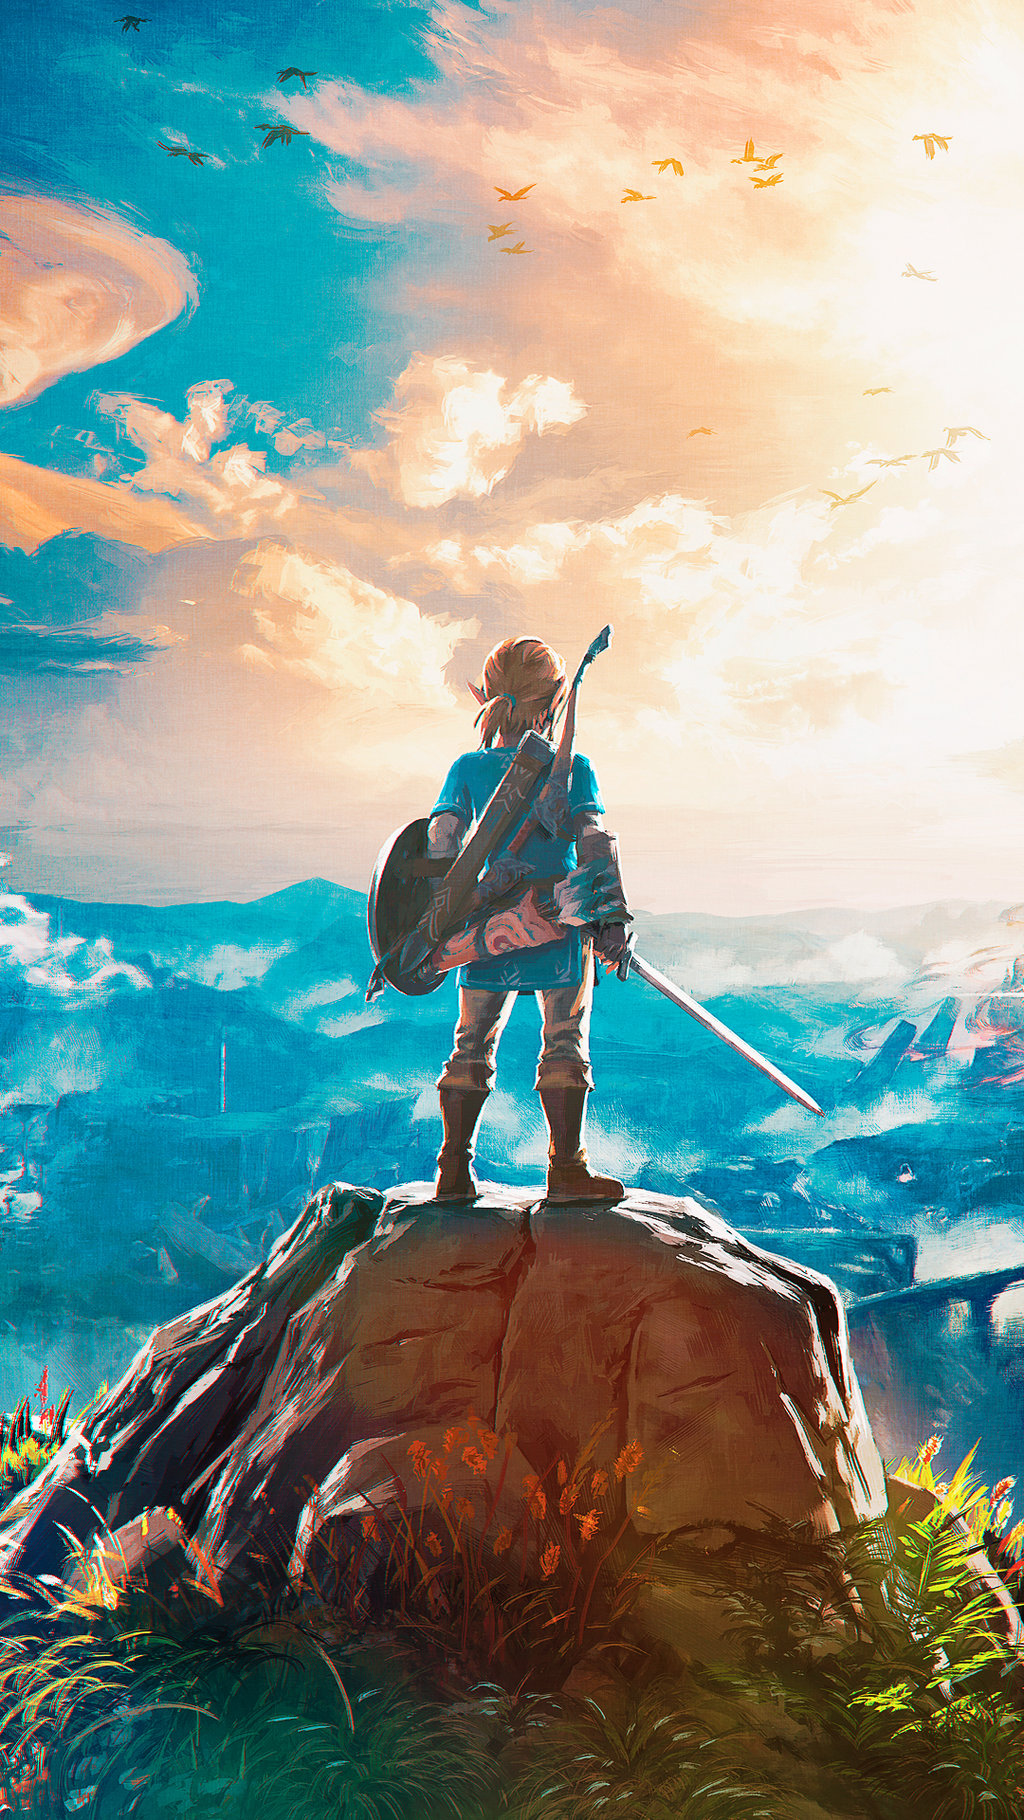 87 Legend Of Zelda Breath Of The Wild Wallpapers On Wallpapersafari